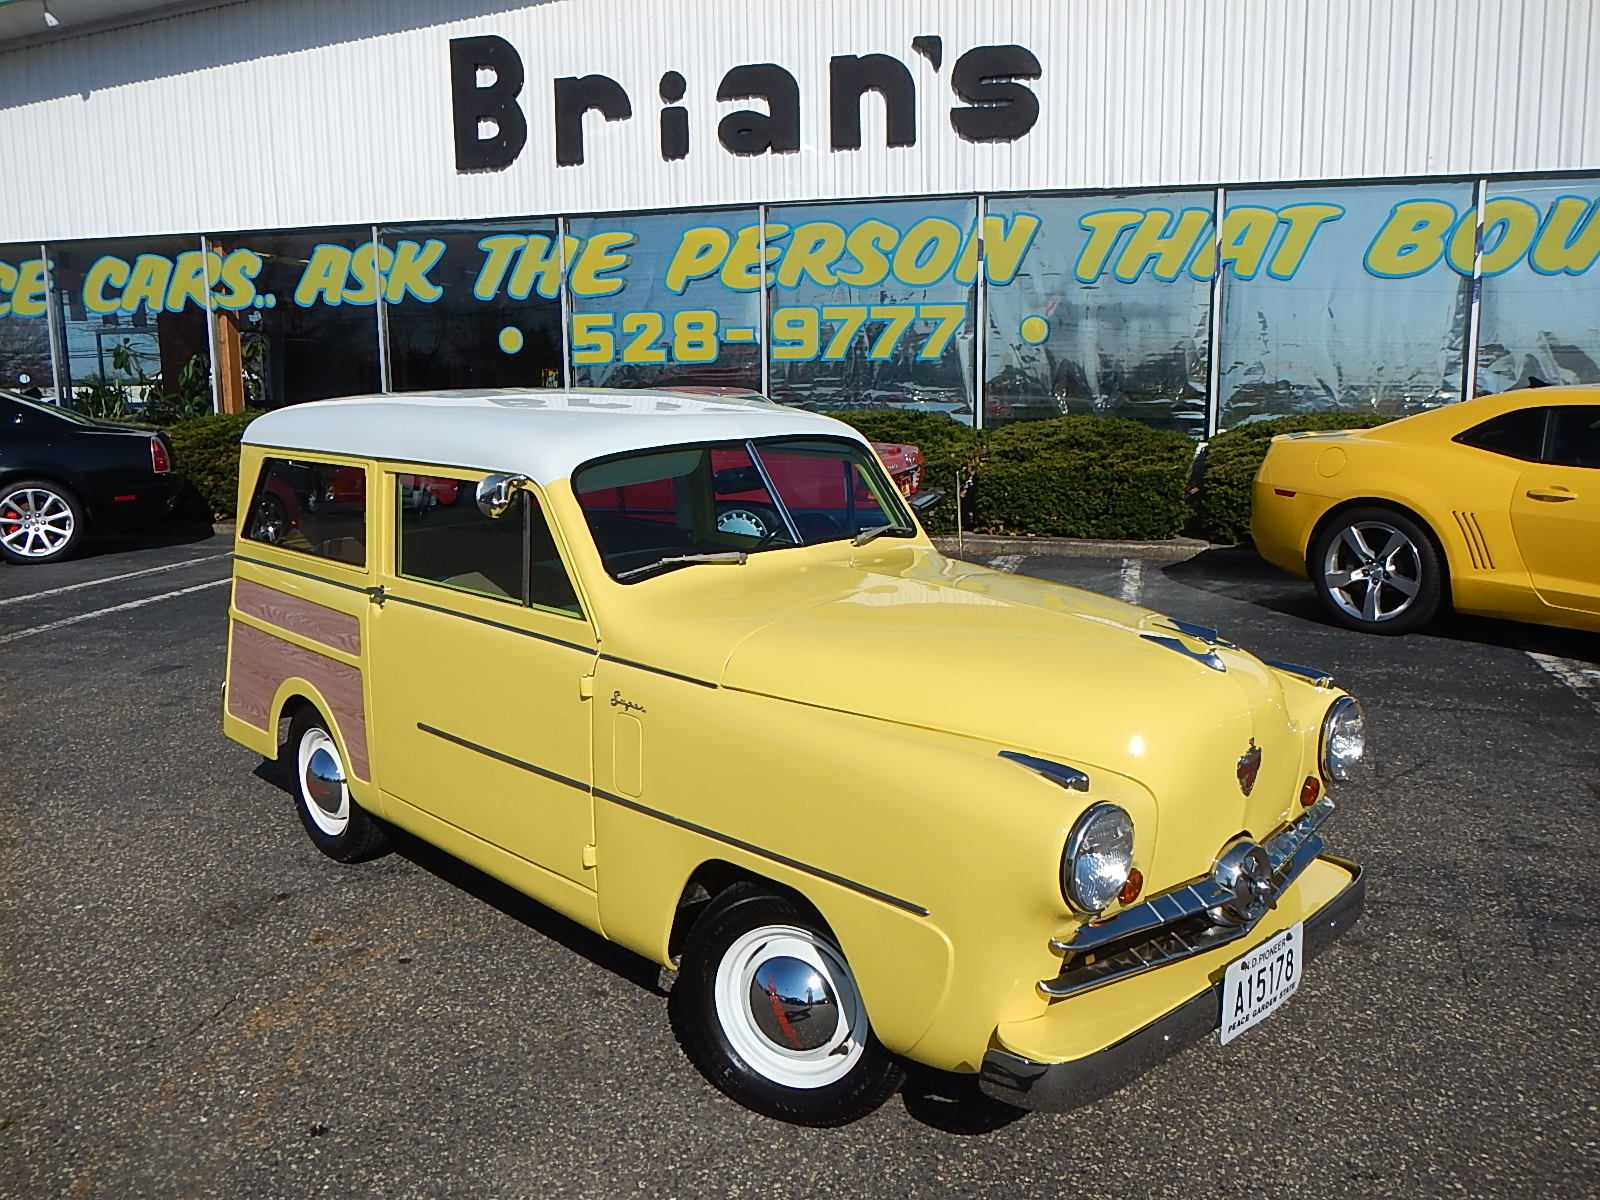 Used 1951 Crosley Super Station Wagon For Sale | Manasquan NJ ...